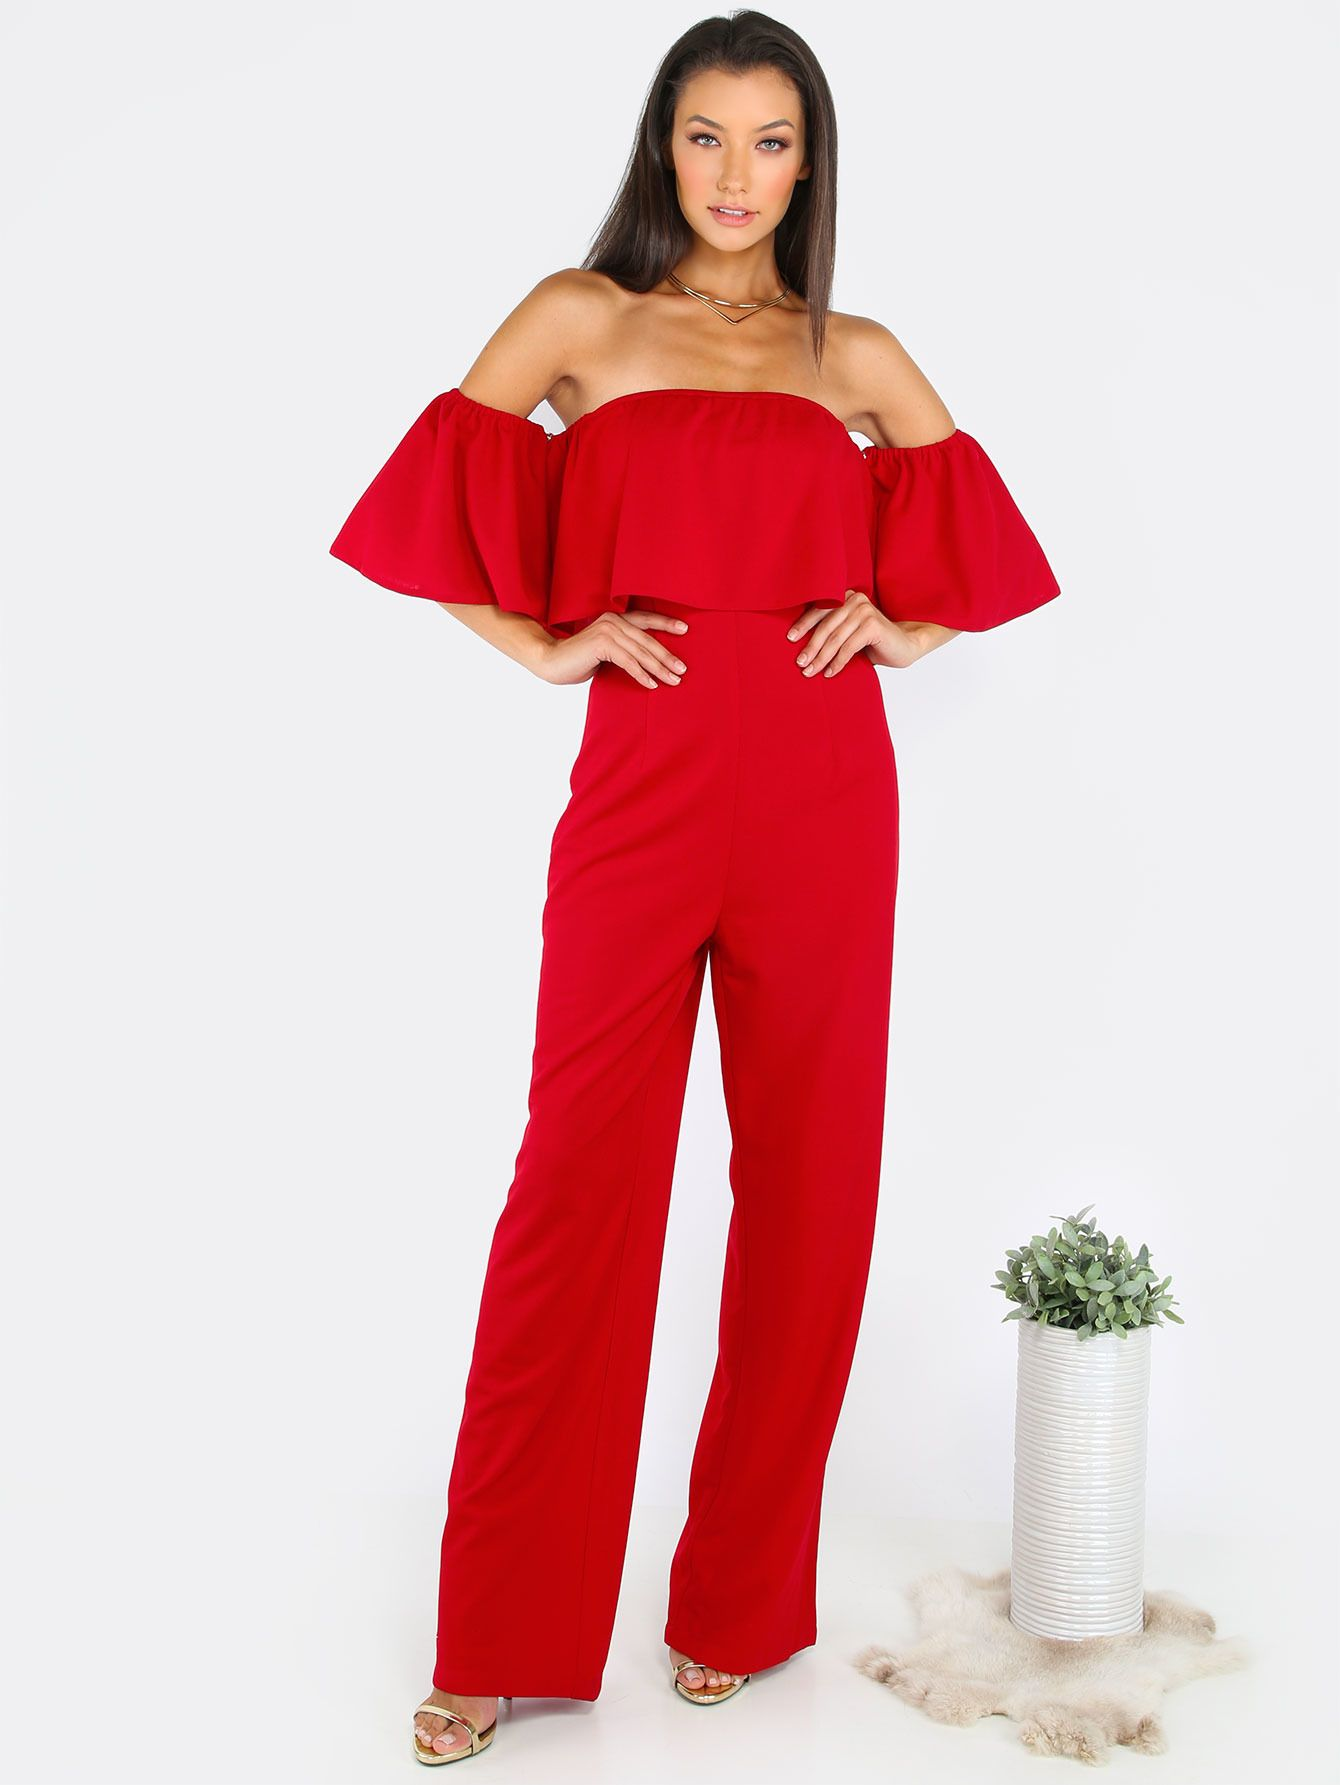 914f3520c24d Online shopping for Off The Shoulder Ruffle Jumpsuit RED from a great  selection of women s fashion clothing   more at MakeMeChic.COM.